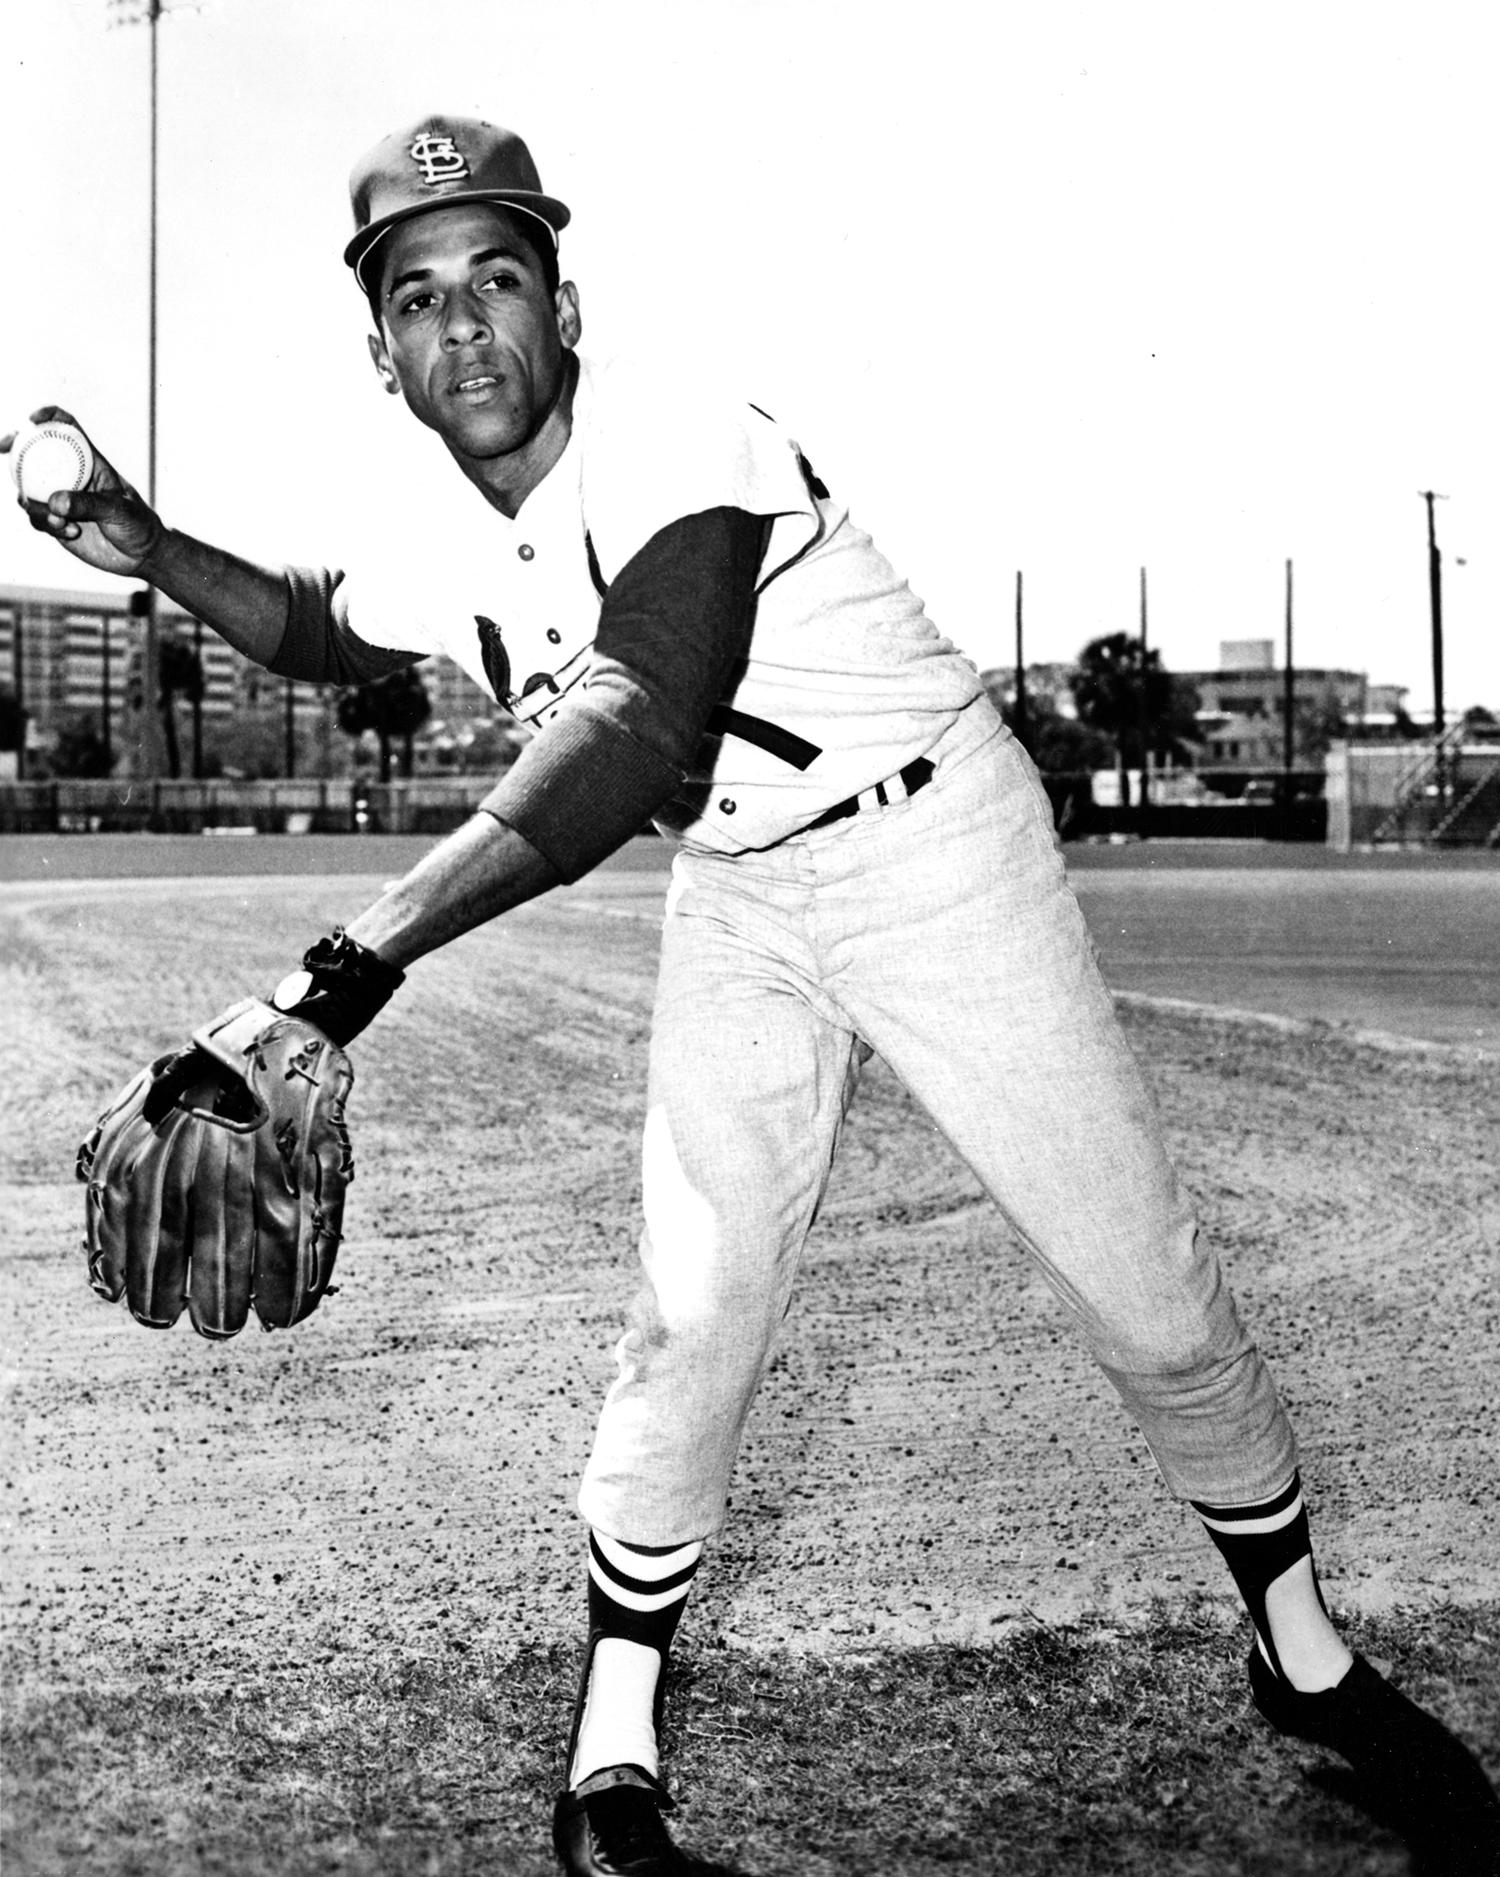 José Cardenal played for the Cardinals from 1970-1971. (National Baseball Hall of Fame)